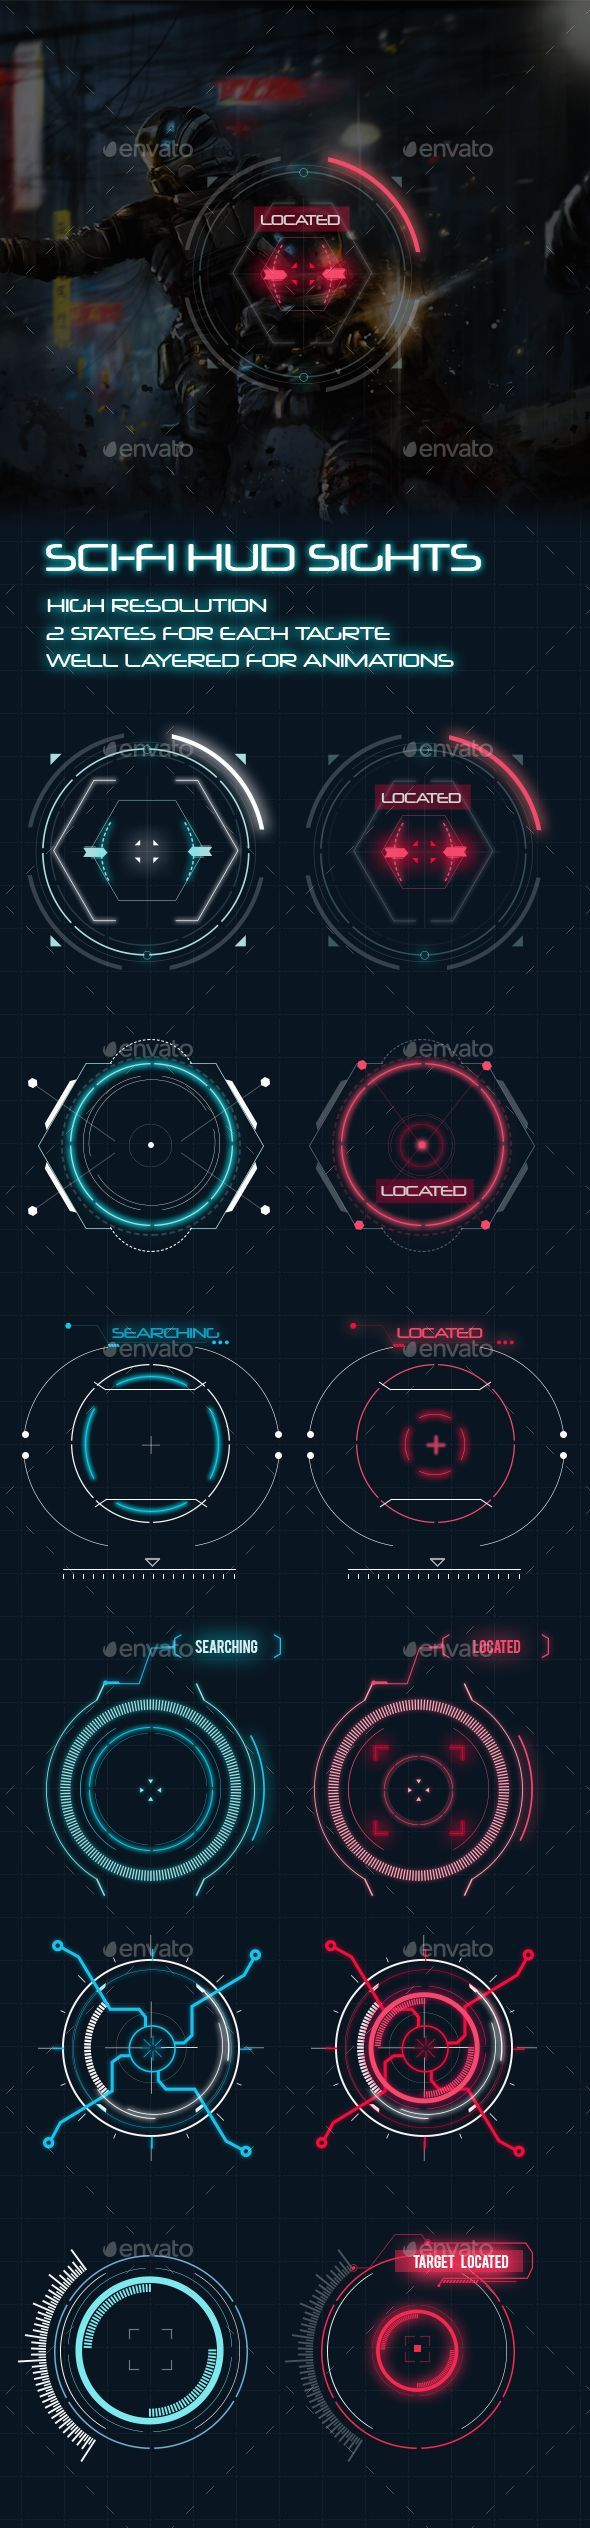 #Sci-Fi HUD Elements for Games - Miscellaneous #Game Assets Download here:  https://graphicriver.net/item/scifi-hud-elements-for-games/20366649?ref=alena994